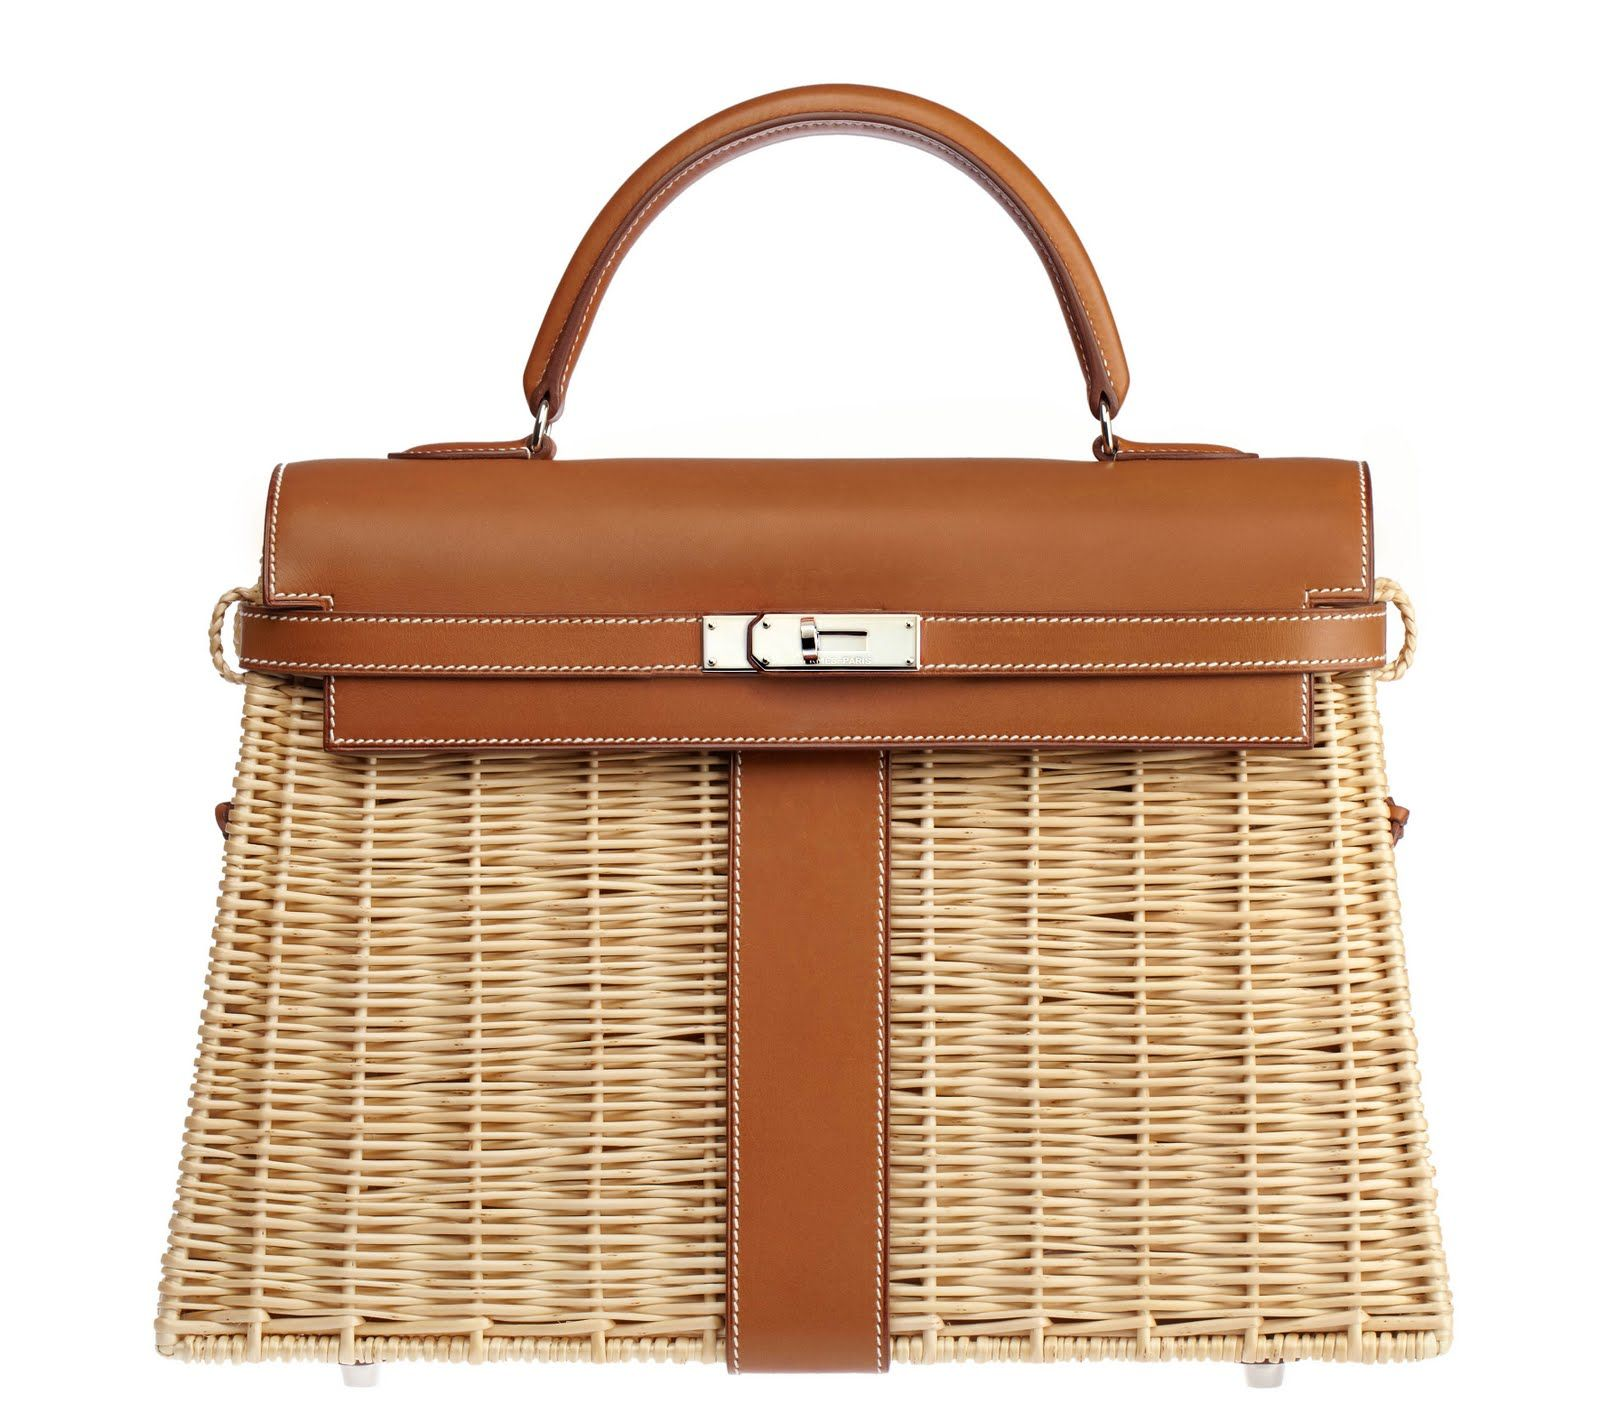 7966c87eaa3 Limited Edition Hermes Picnic Kelly. | I've got this in the bag ...